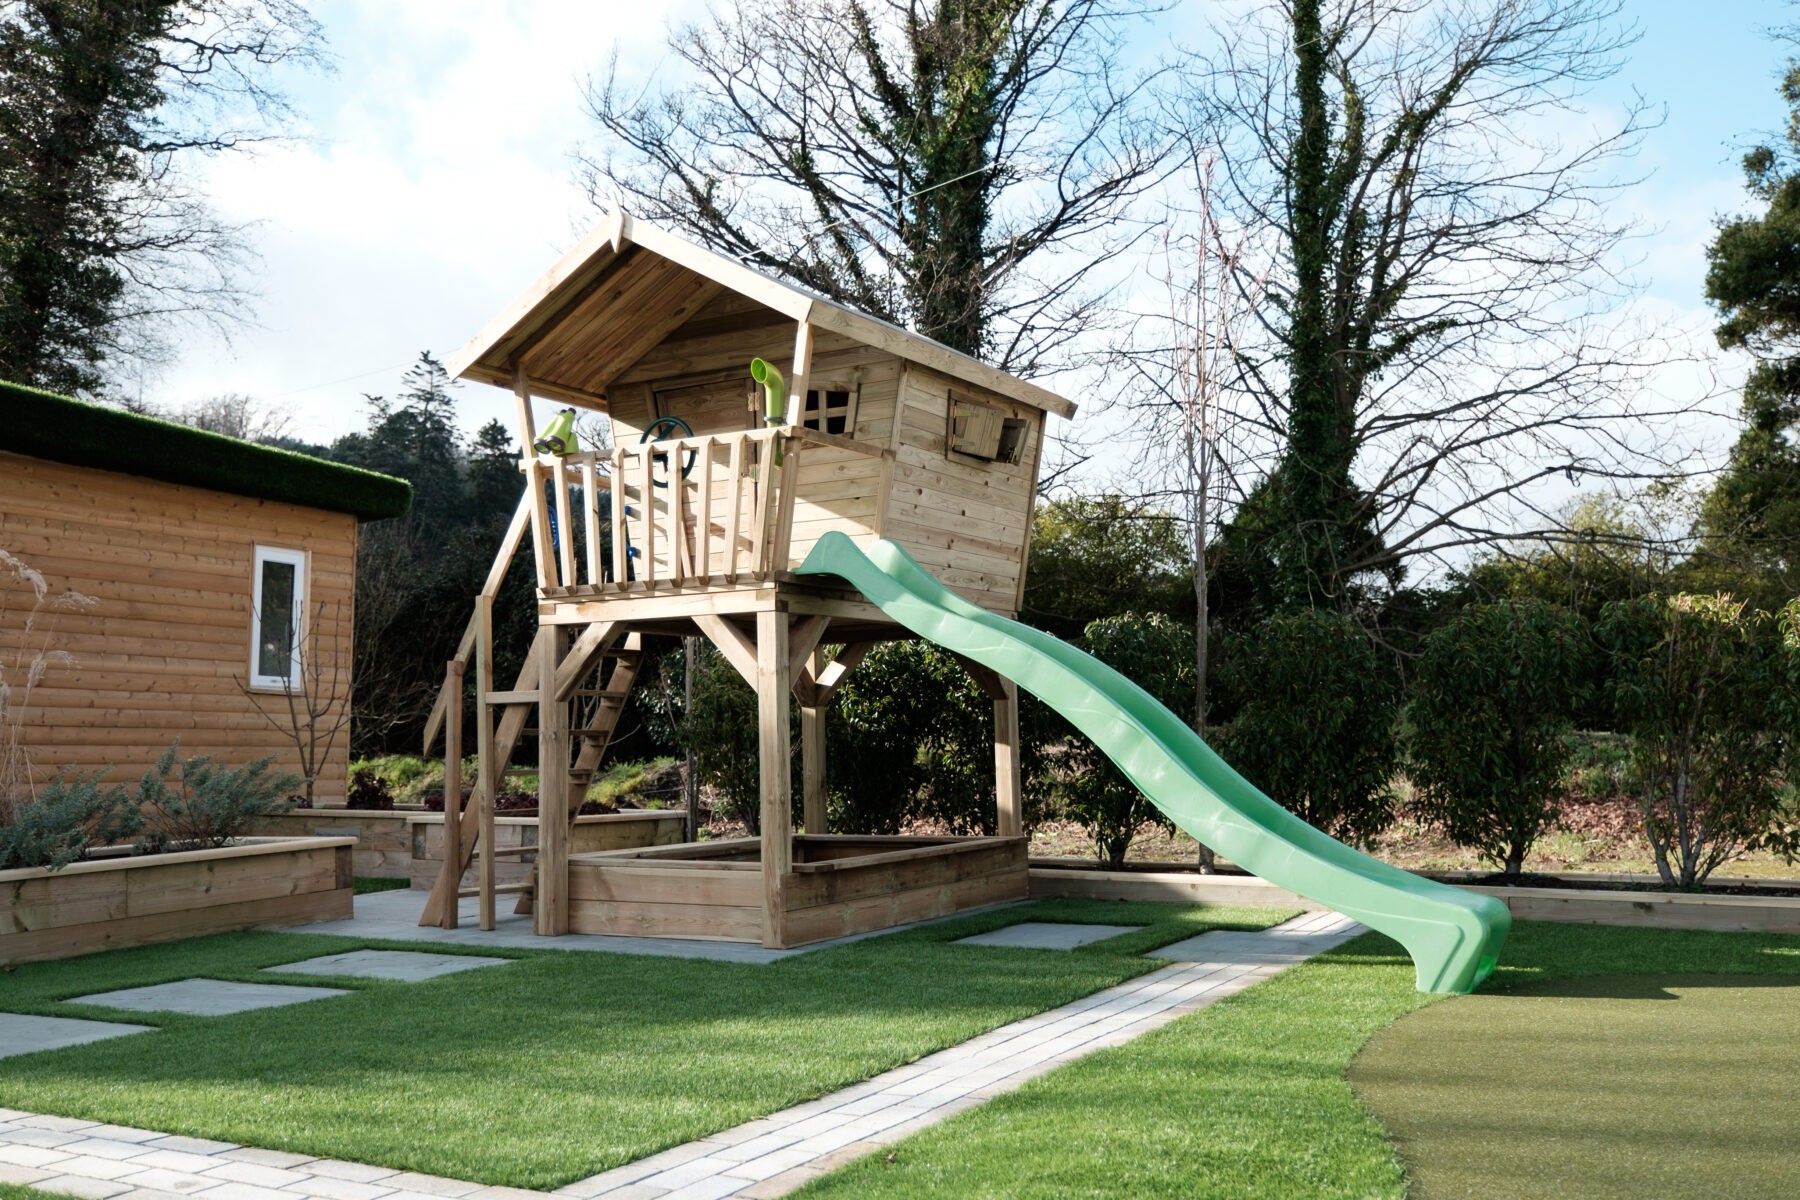 Tree House For Kids | Playhouses | Kids Playhouse | Wooden Playhouse Ireland | Dino Dens